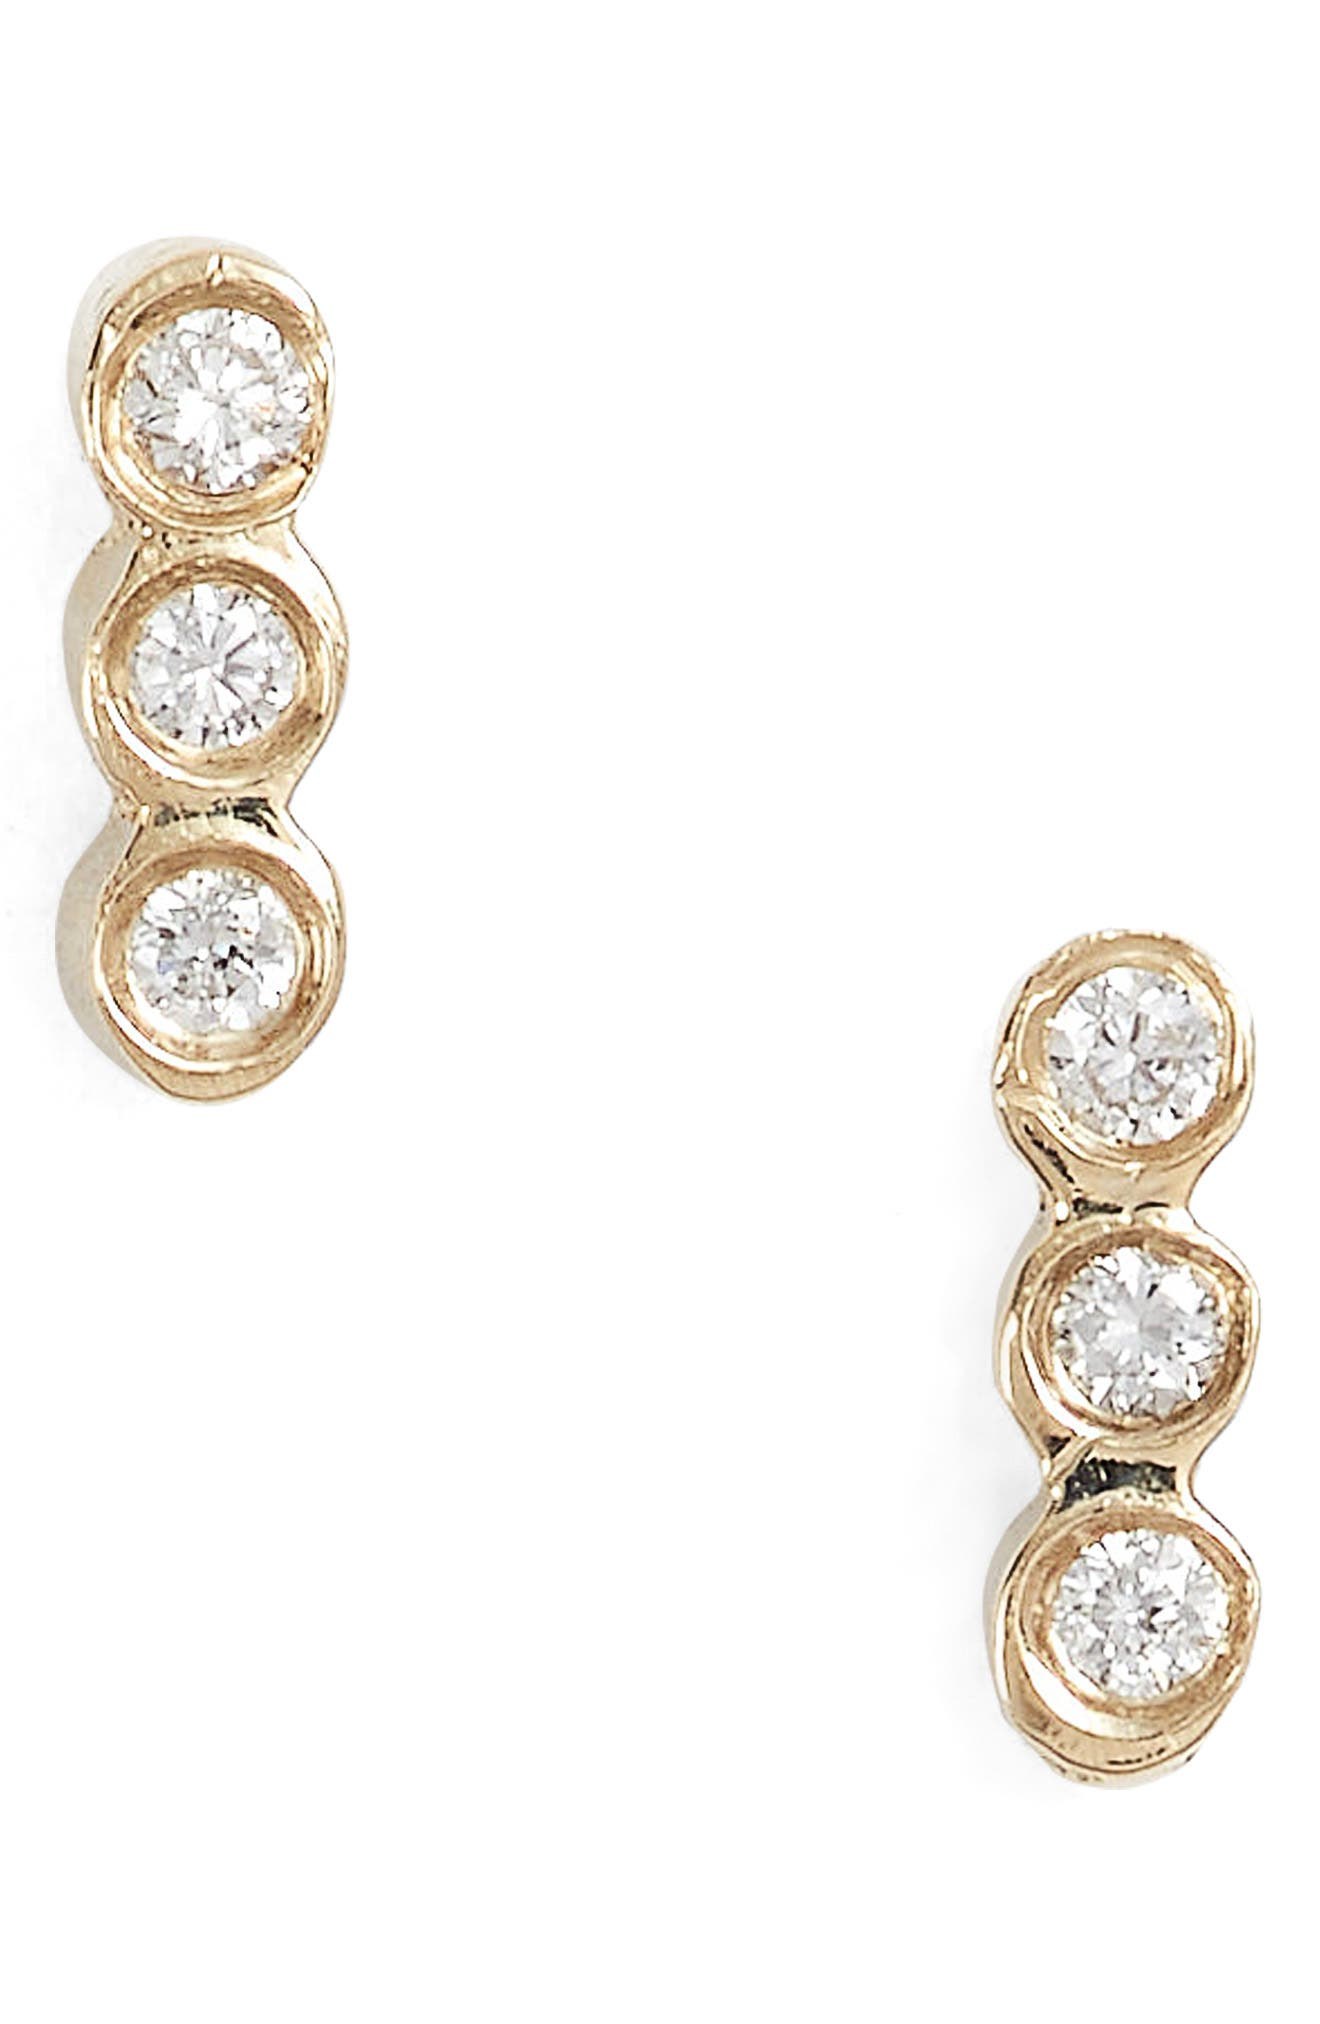 Diamond Bezel Bar Stud Earrings,                         Main,                         color, YELLOW GOLD